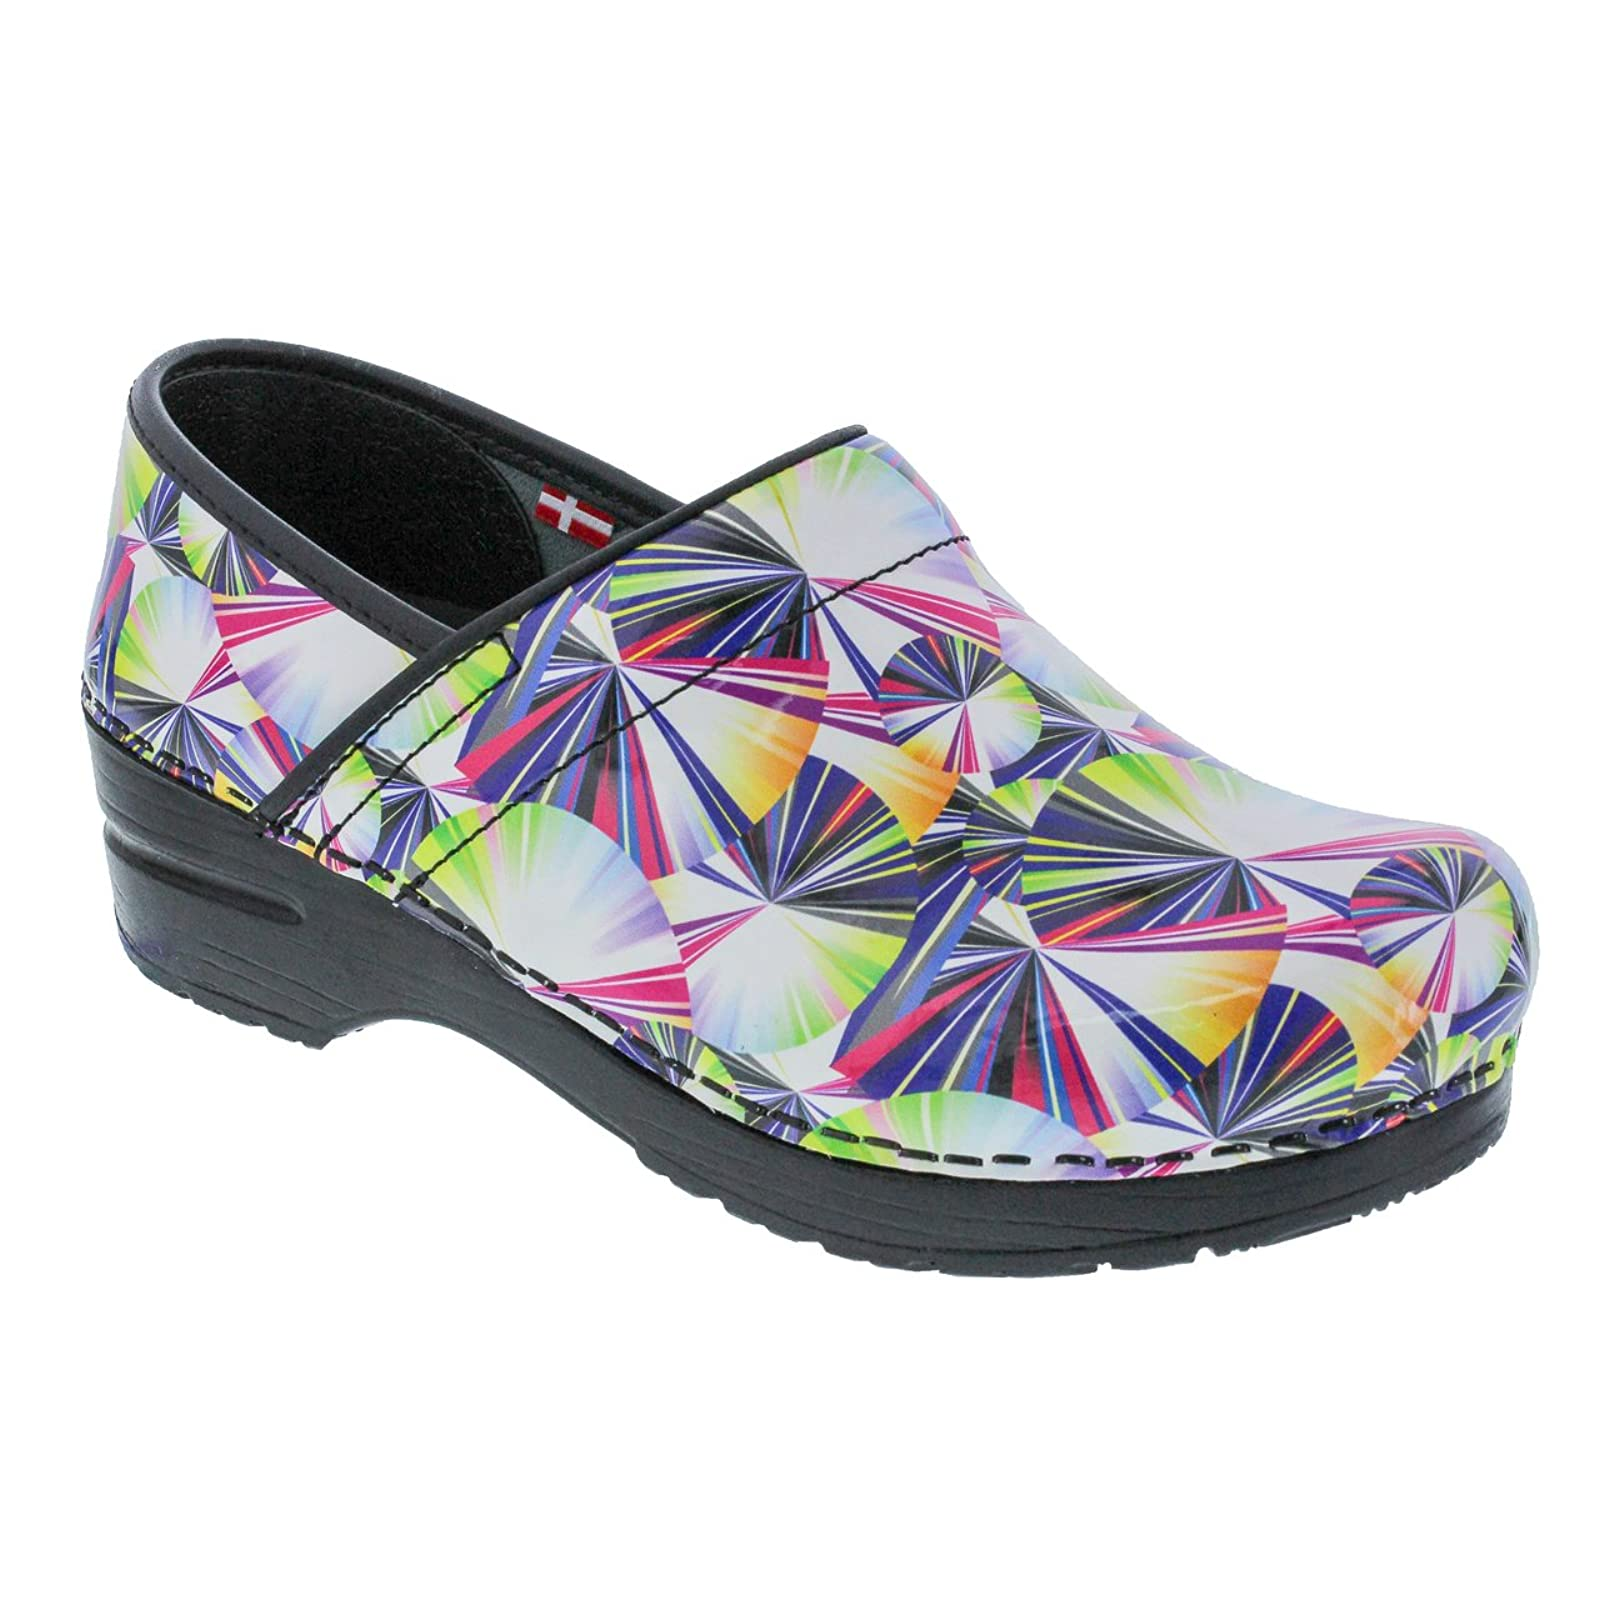 Sanita Women's Original Pro. Geo Clog 459156 Multi - 1